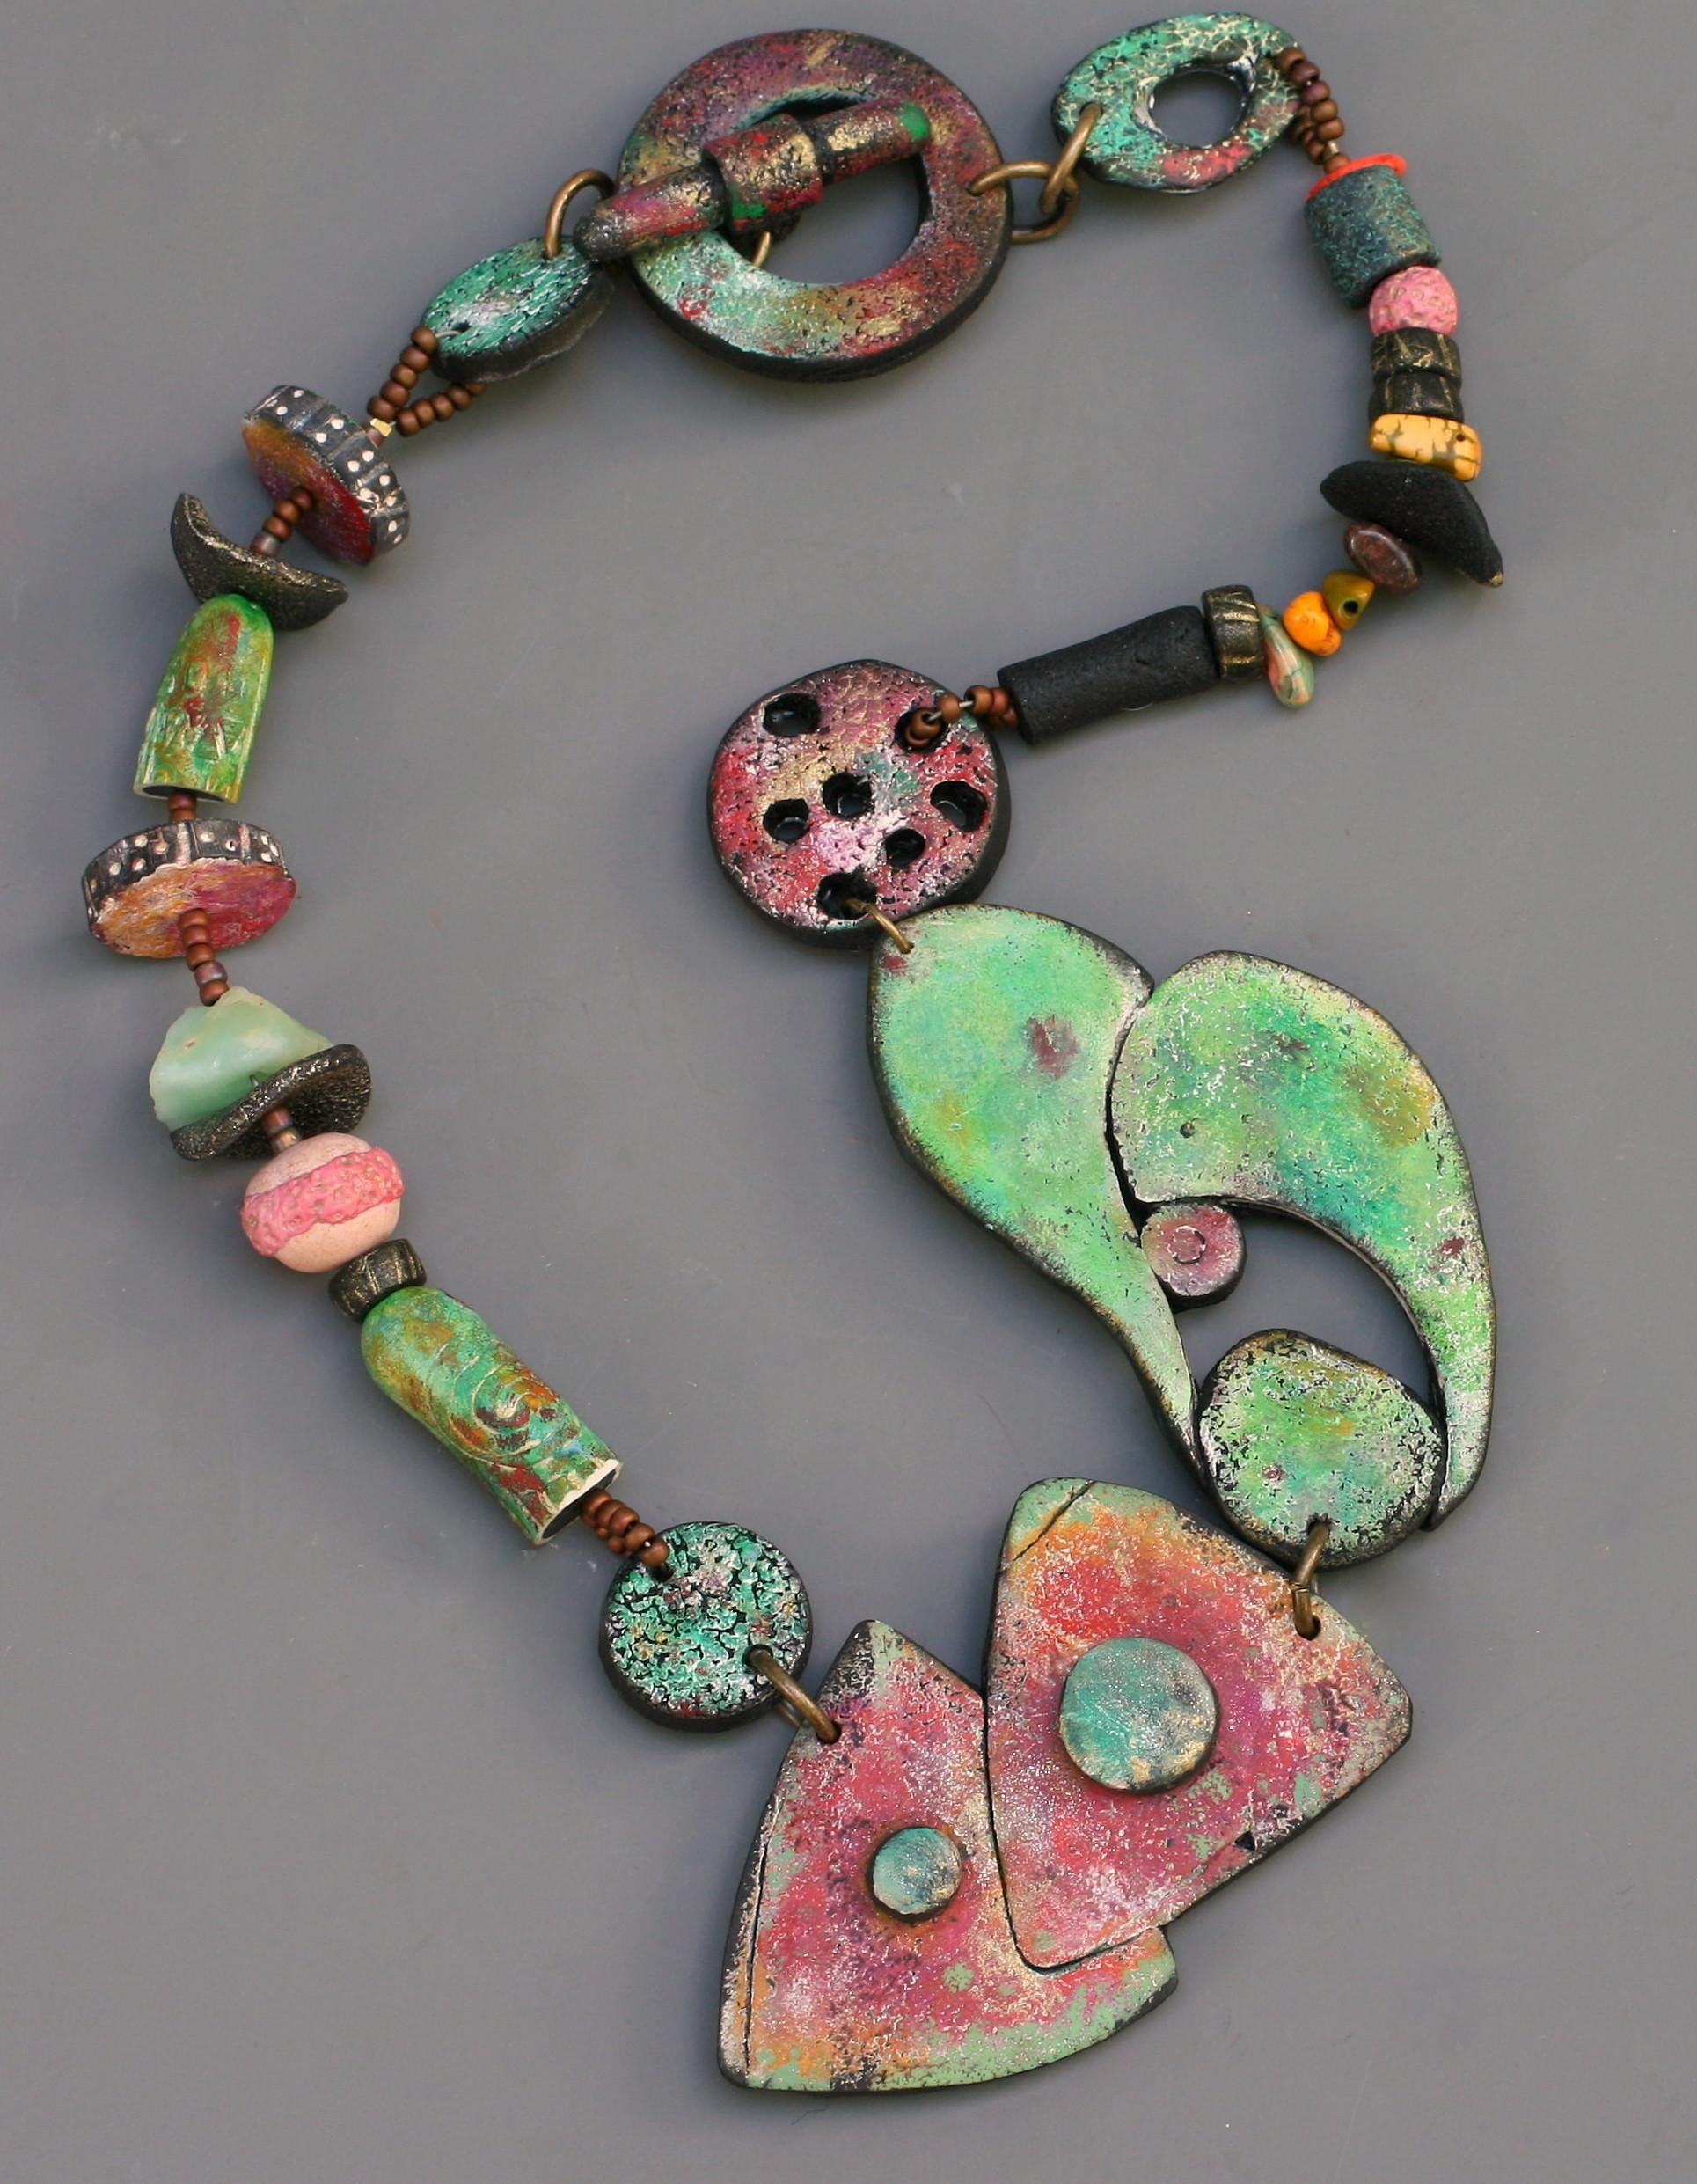 Rusty Garage Polymer Clay Necklace Jewelry Making Journal